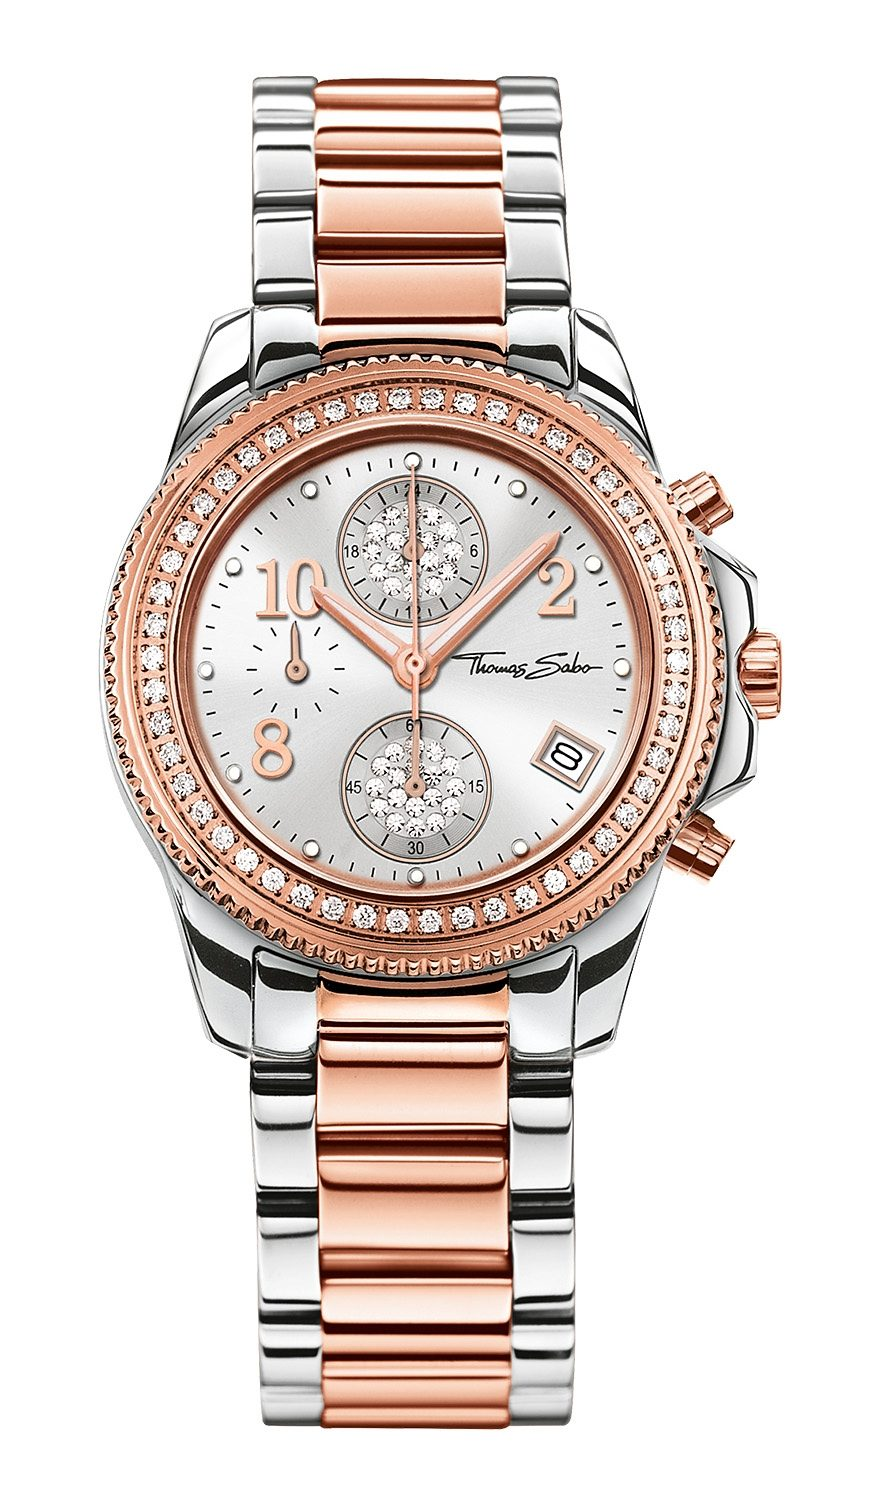 Thomas Sabo Chronograph »GLAM CHRONO, WA0241«